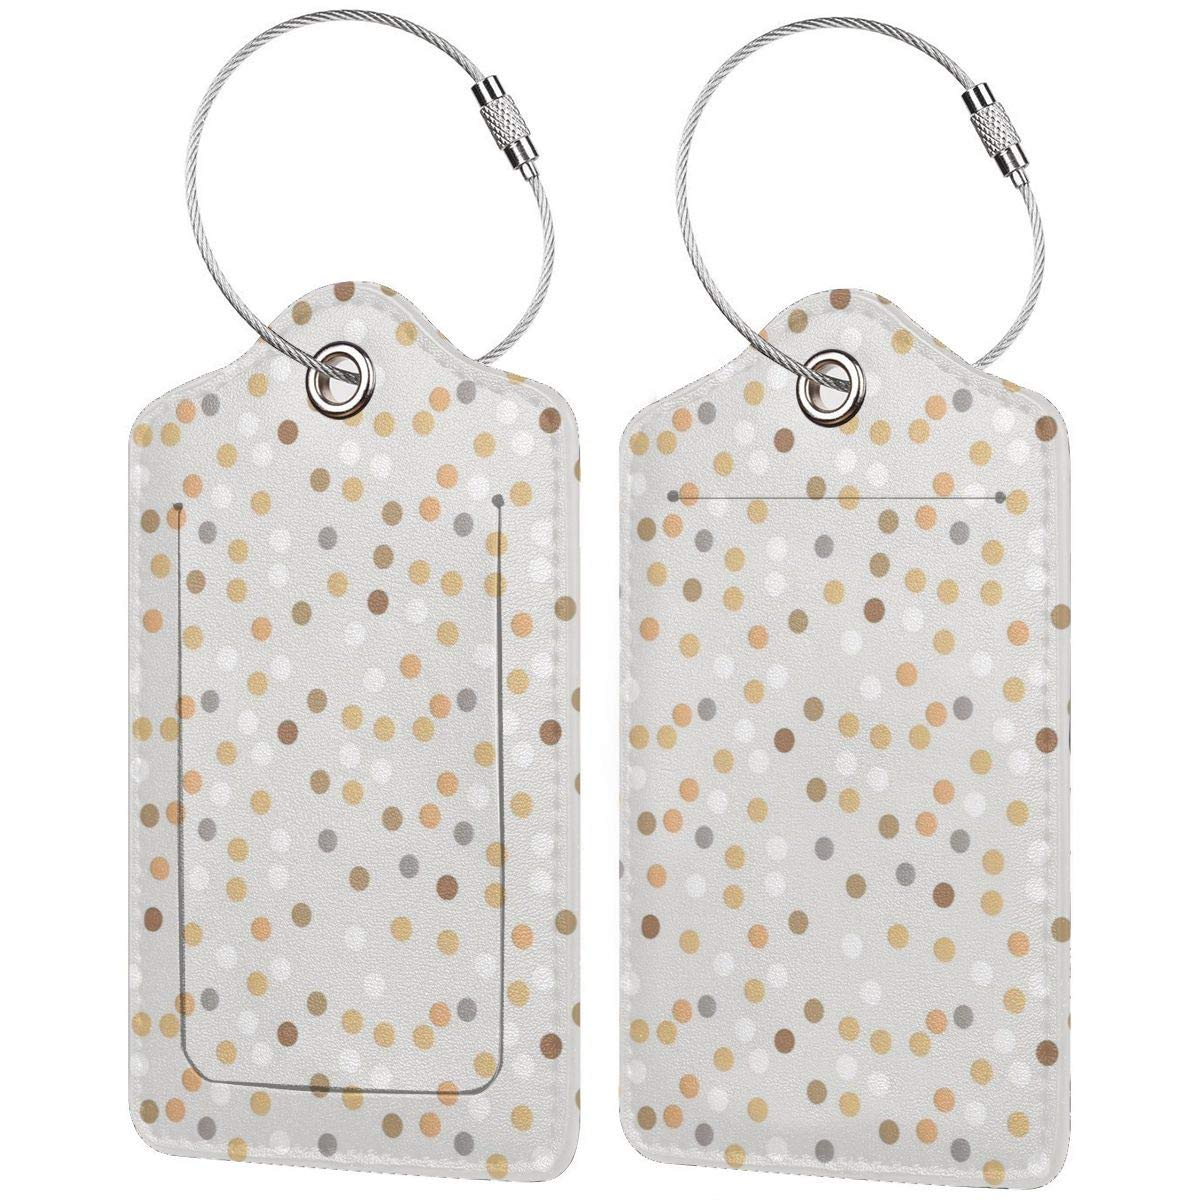 White And Yellow Polka Dot Business Trip Luggage Tags Information Labels Leather Cover Owner Contact Information Card For Suitcase//Baggage//Boarding Case//Backpack